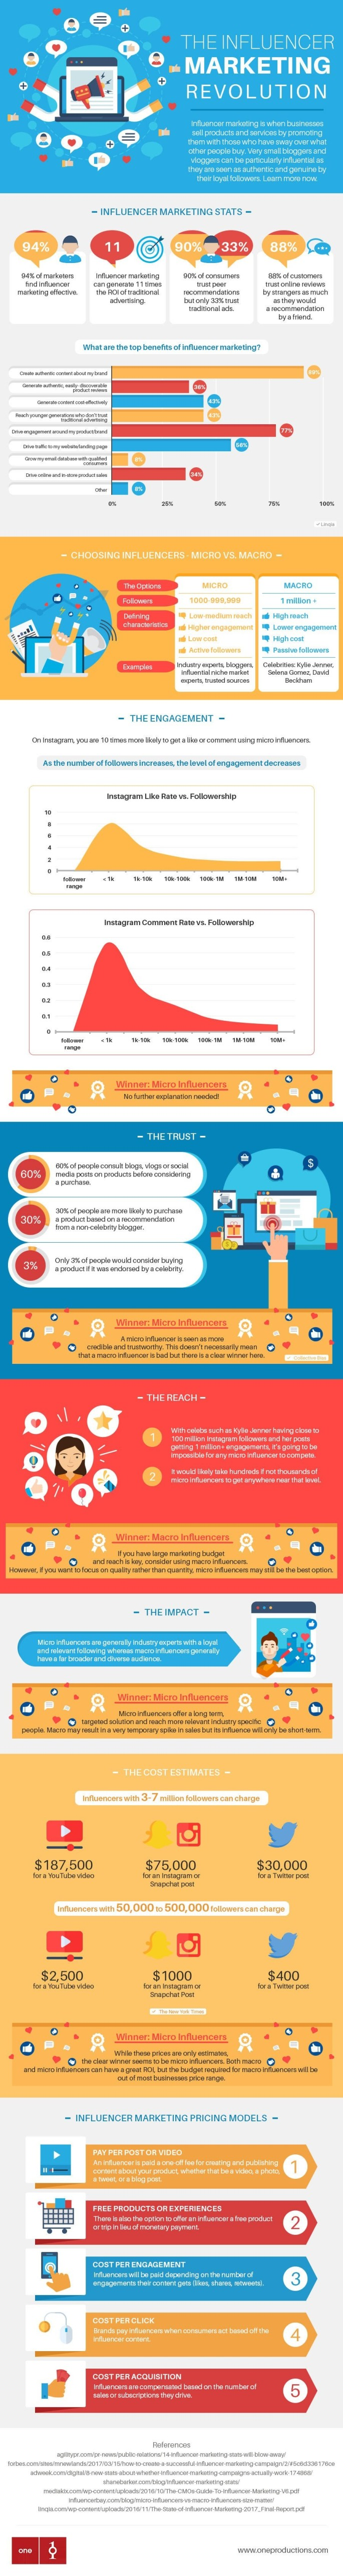 infographic-the-influencer-marketing-revolution_lisiane_ndong